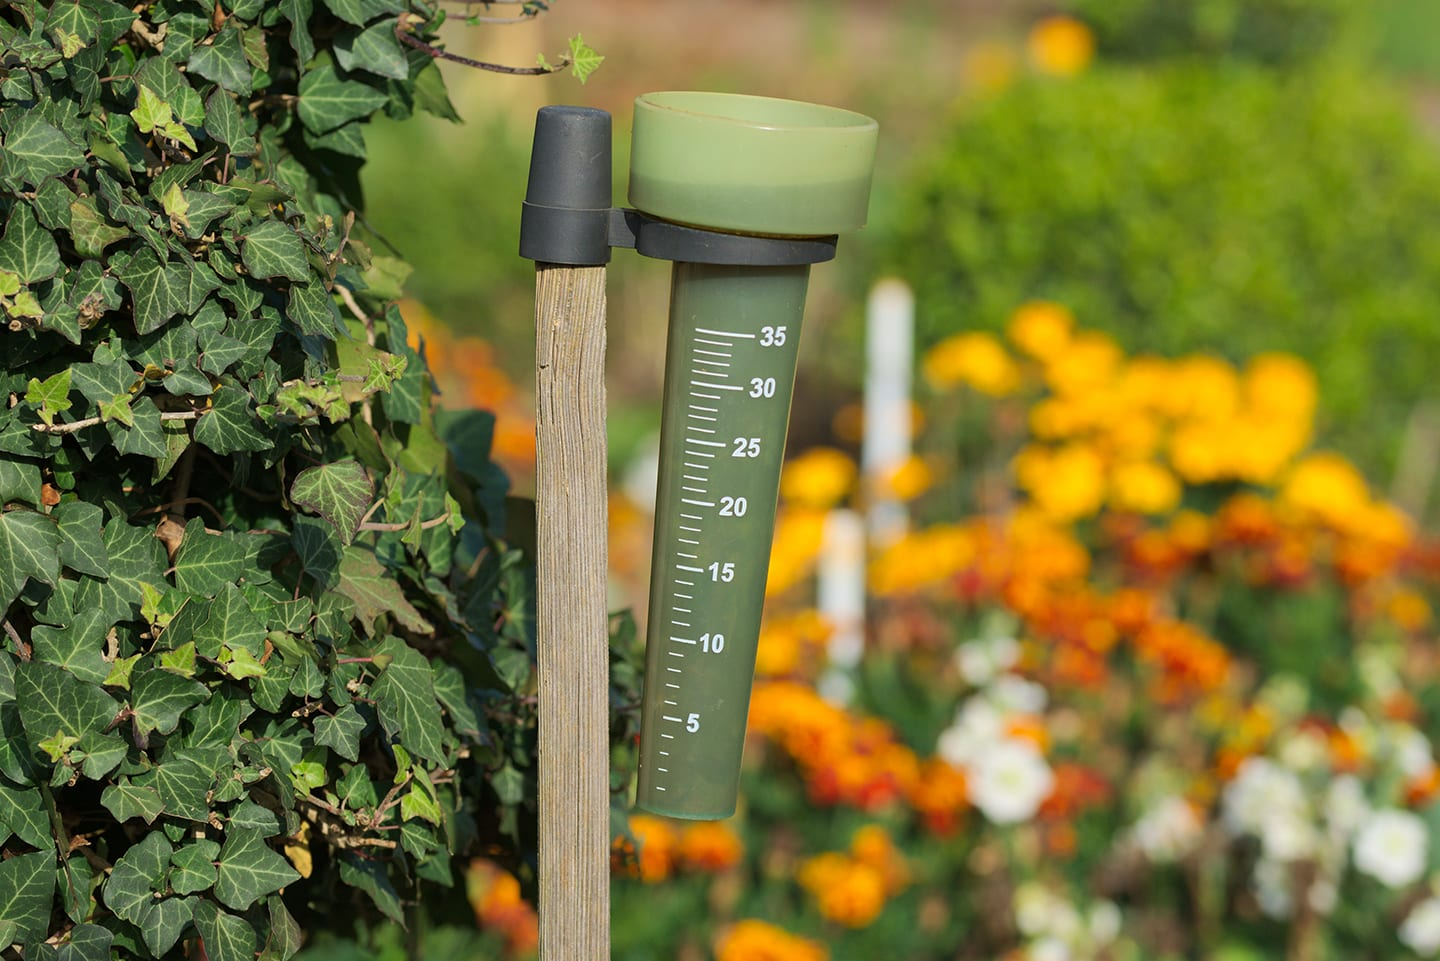 rain gauges help with your water conservation